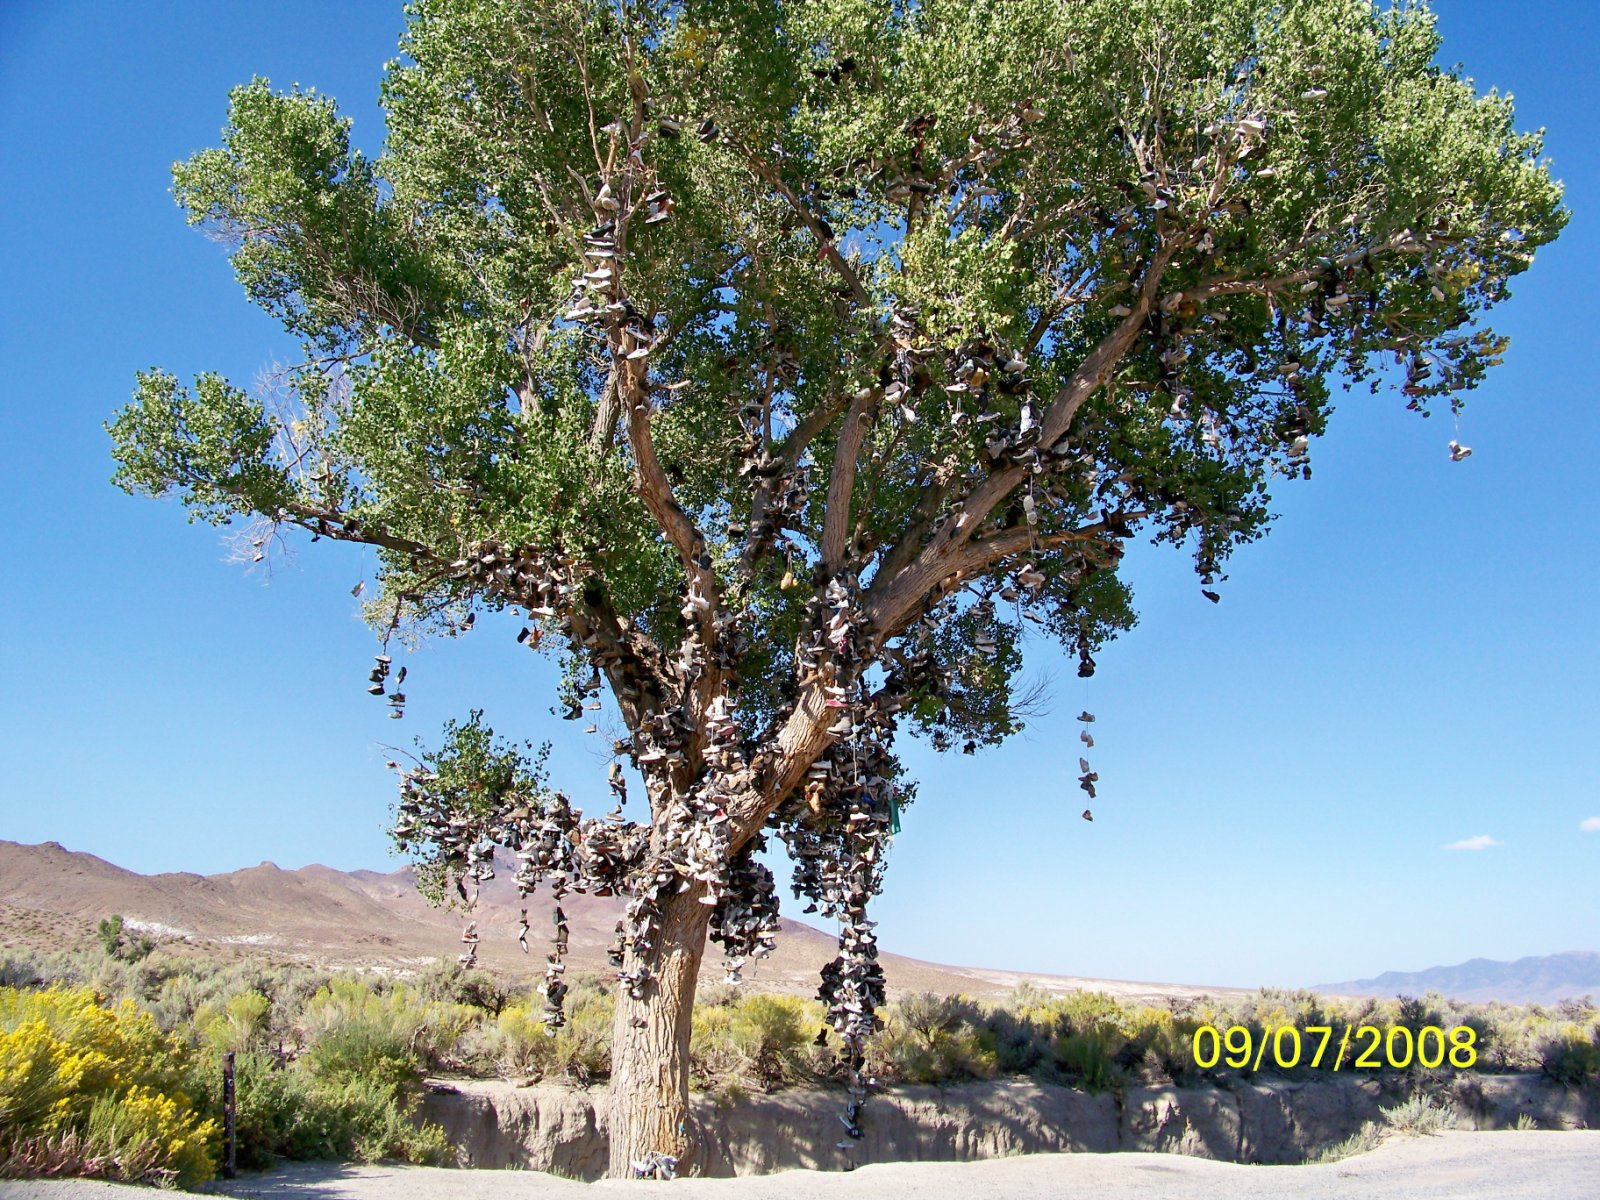 arbre-a-chaussures-nevada